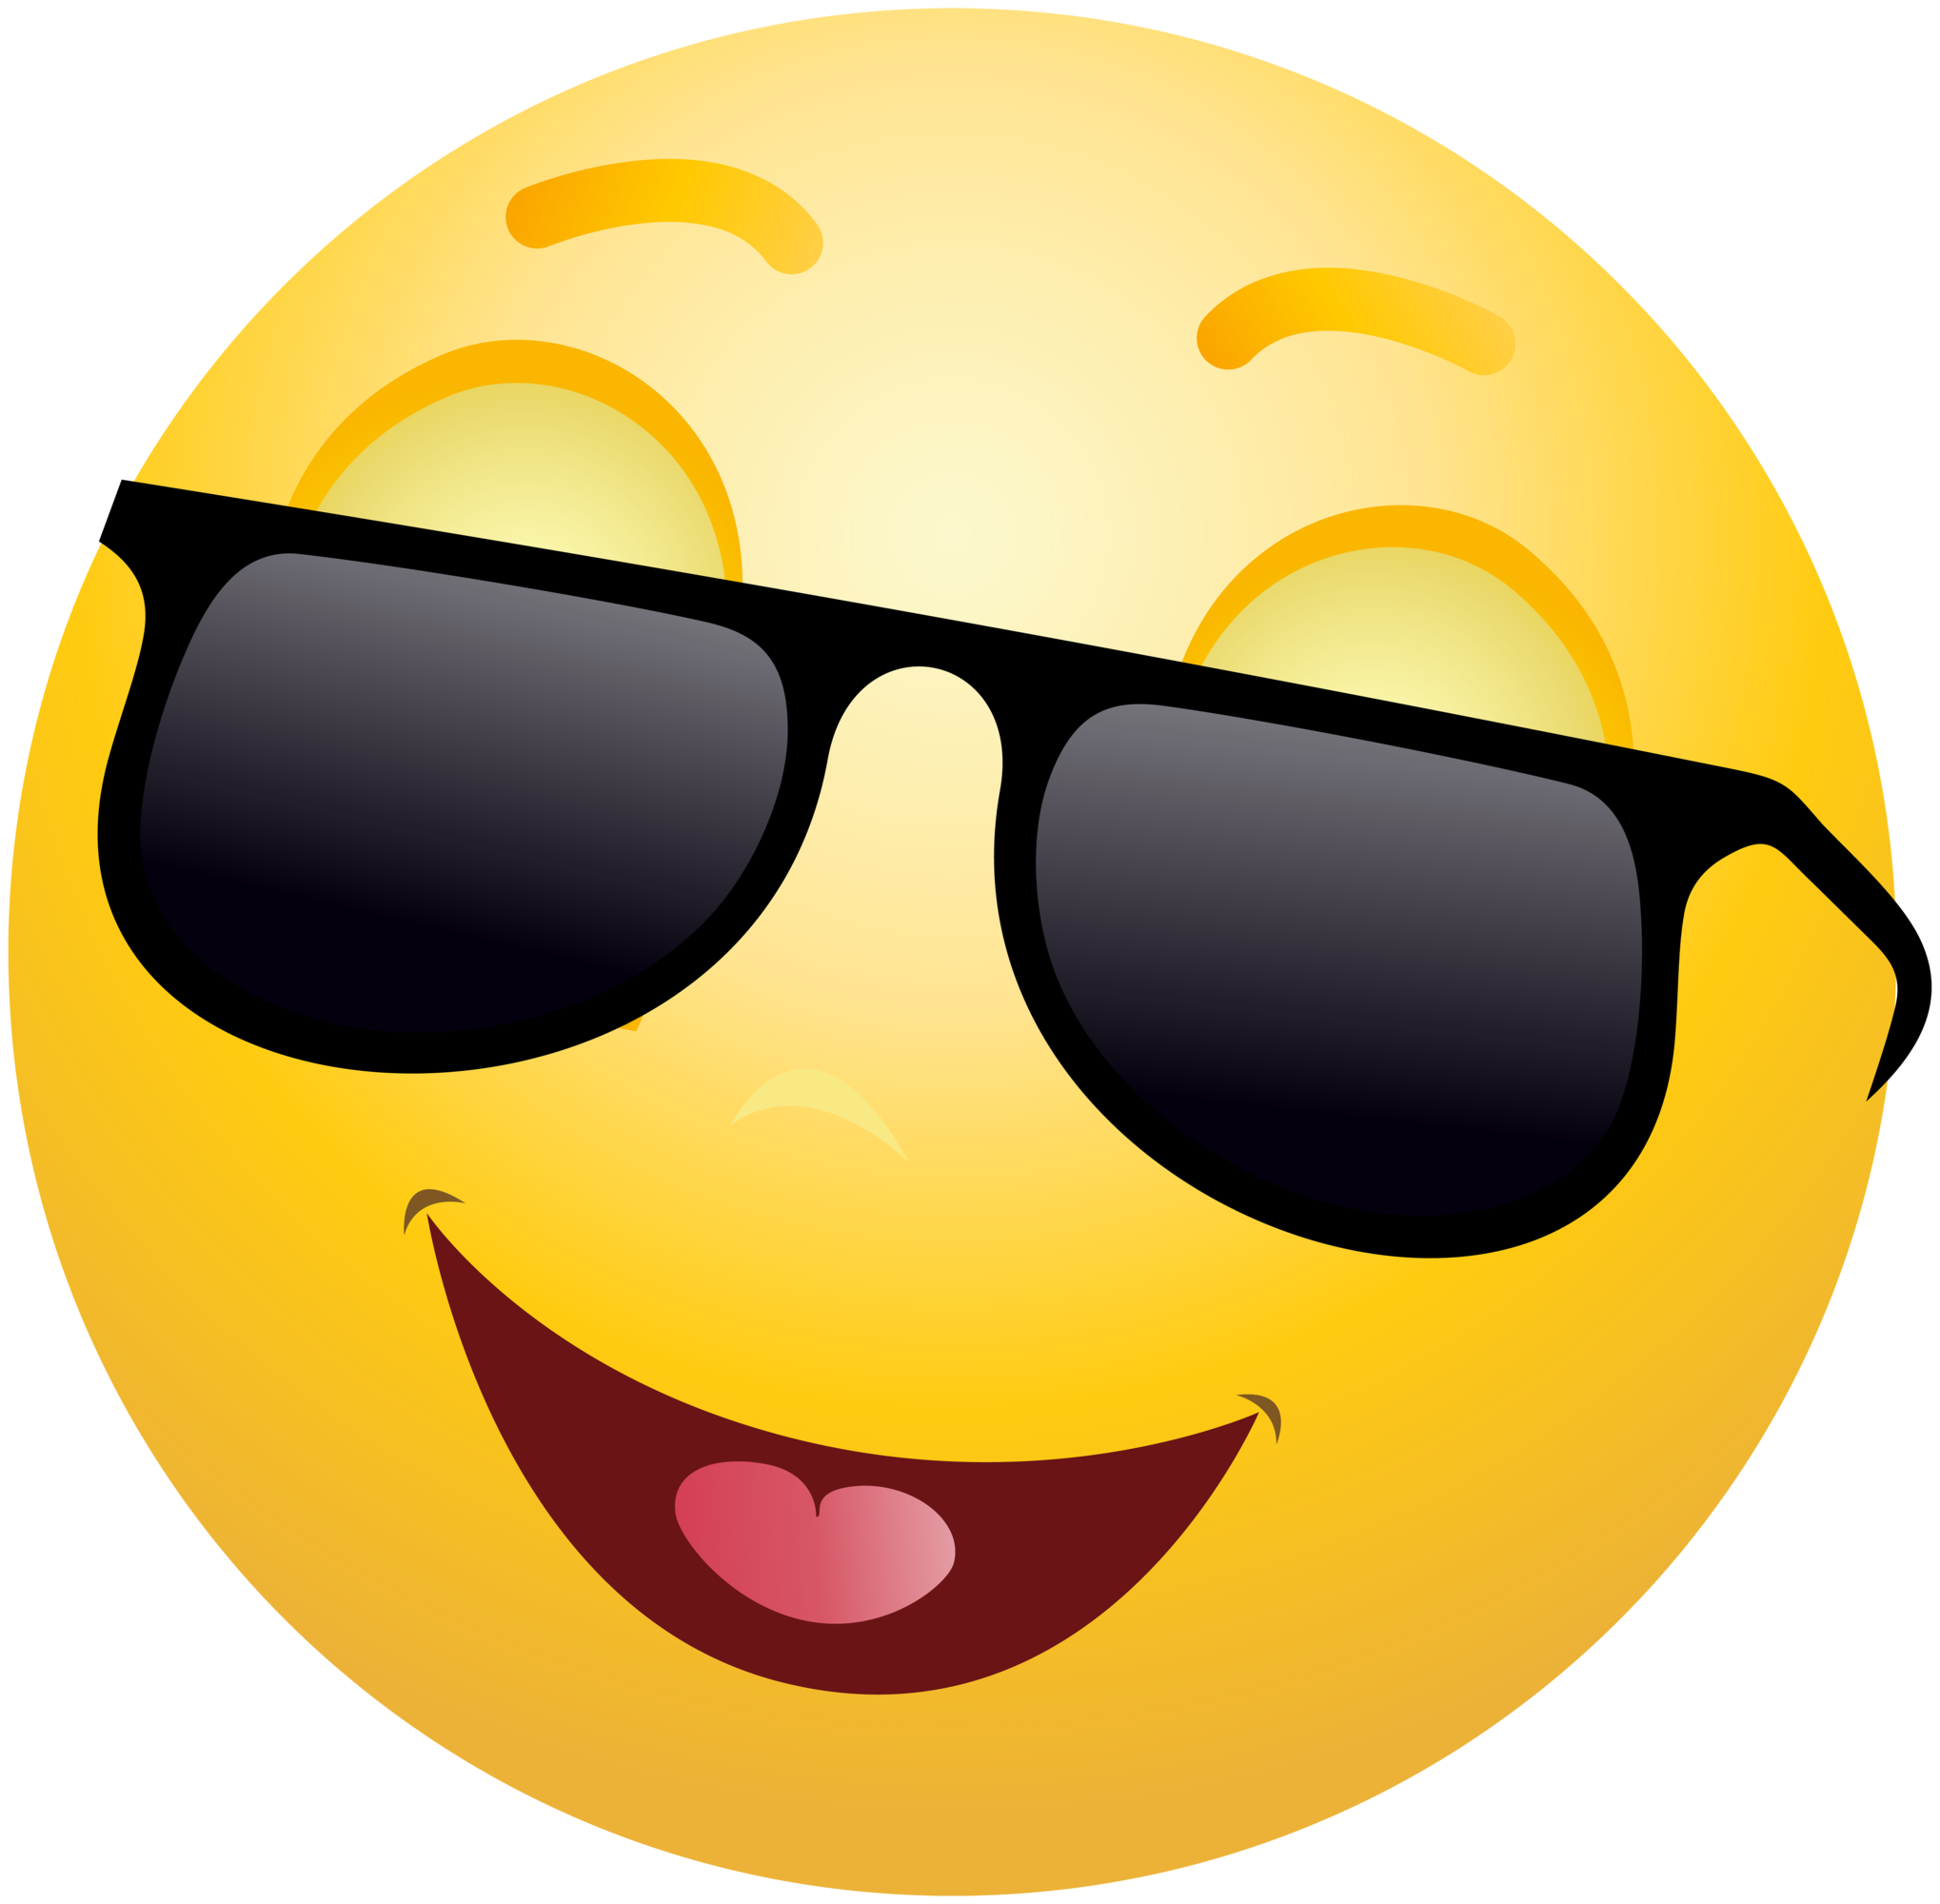 Sunglasses clipart cool. Smiling emoticon emoji with